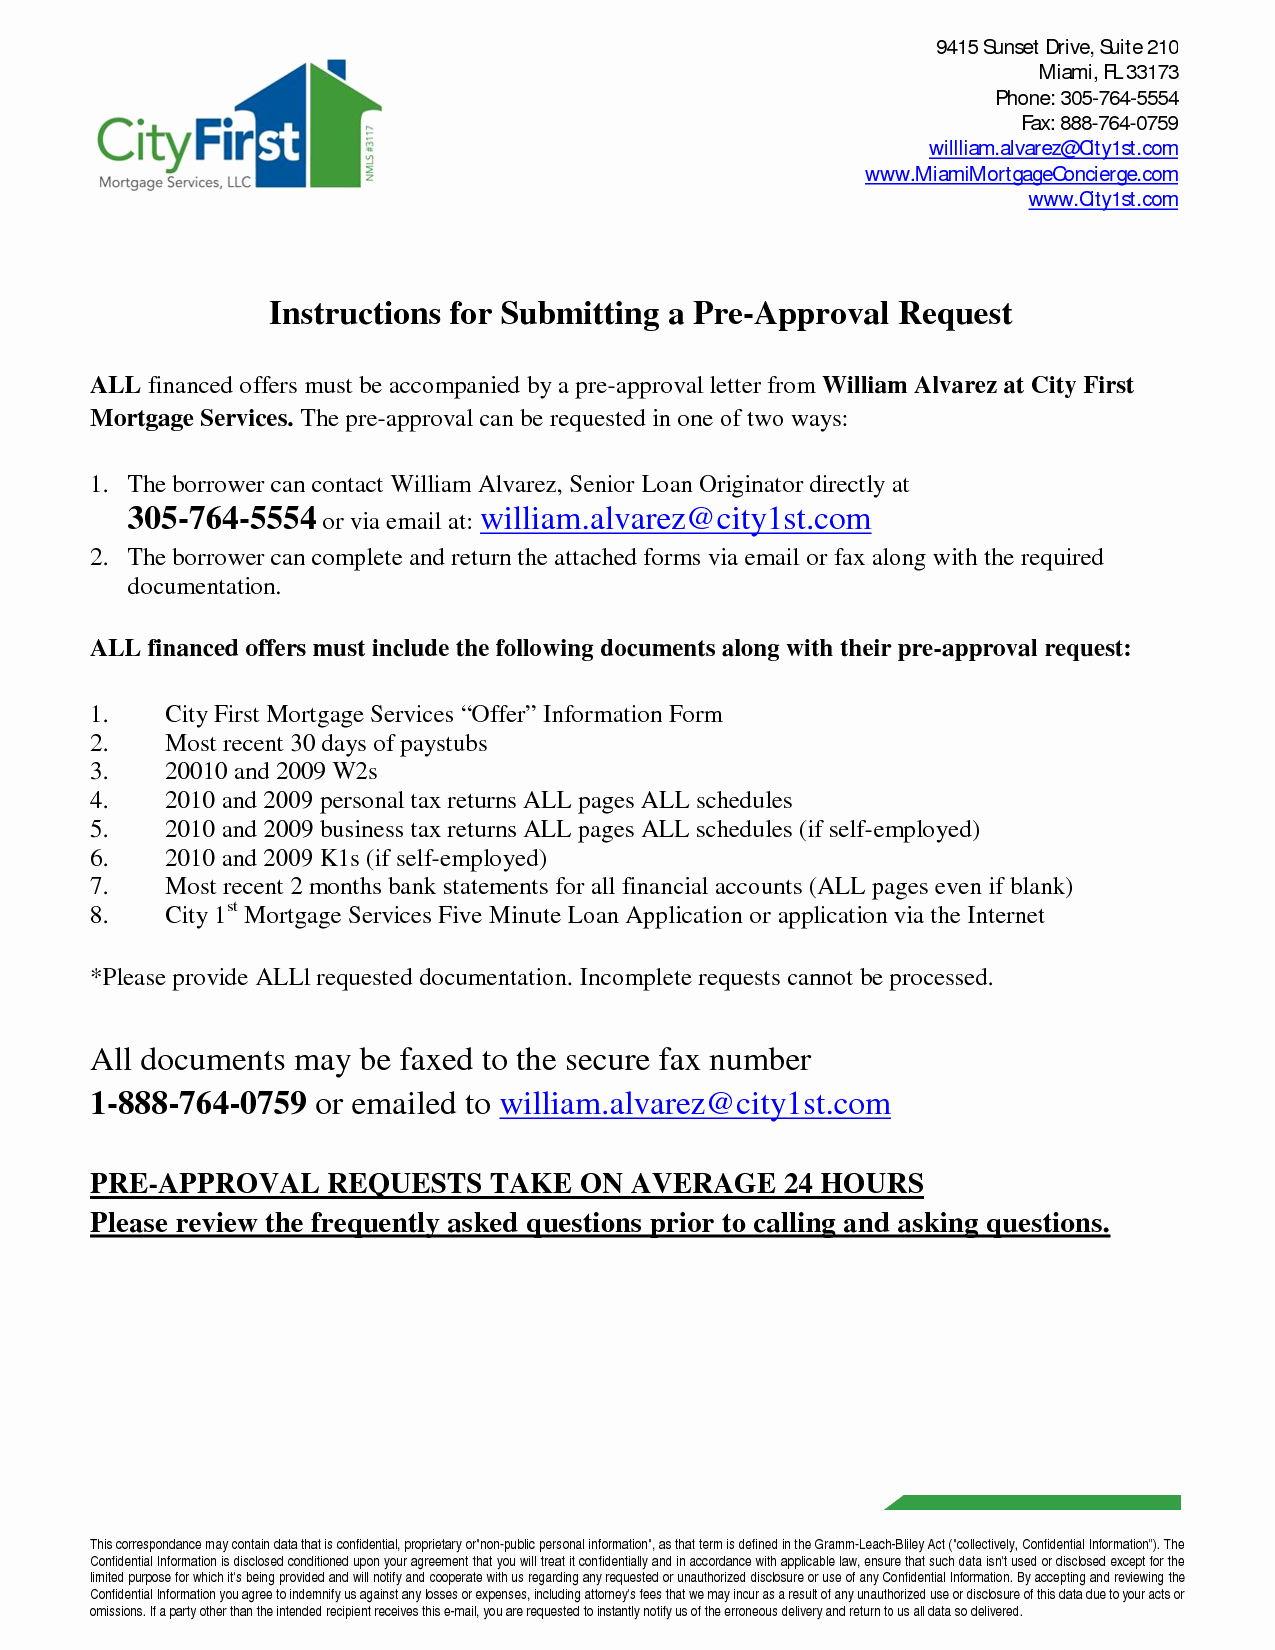 Mortgage Pre Approval Letter Template Awesome Mortgage Template Bamboodownunder